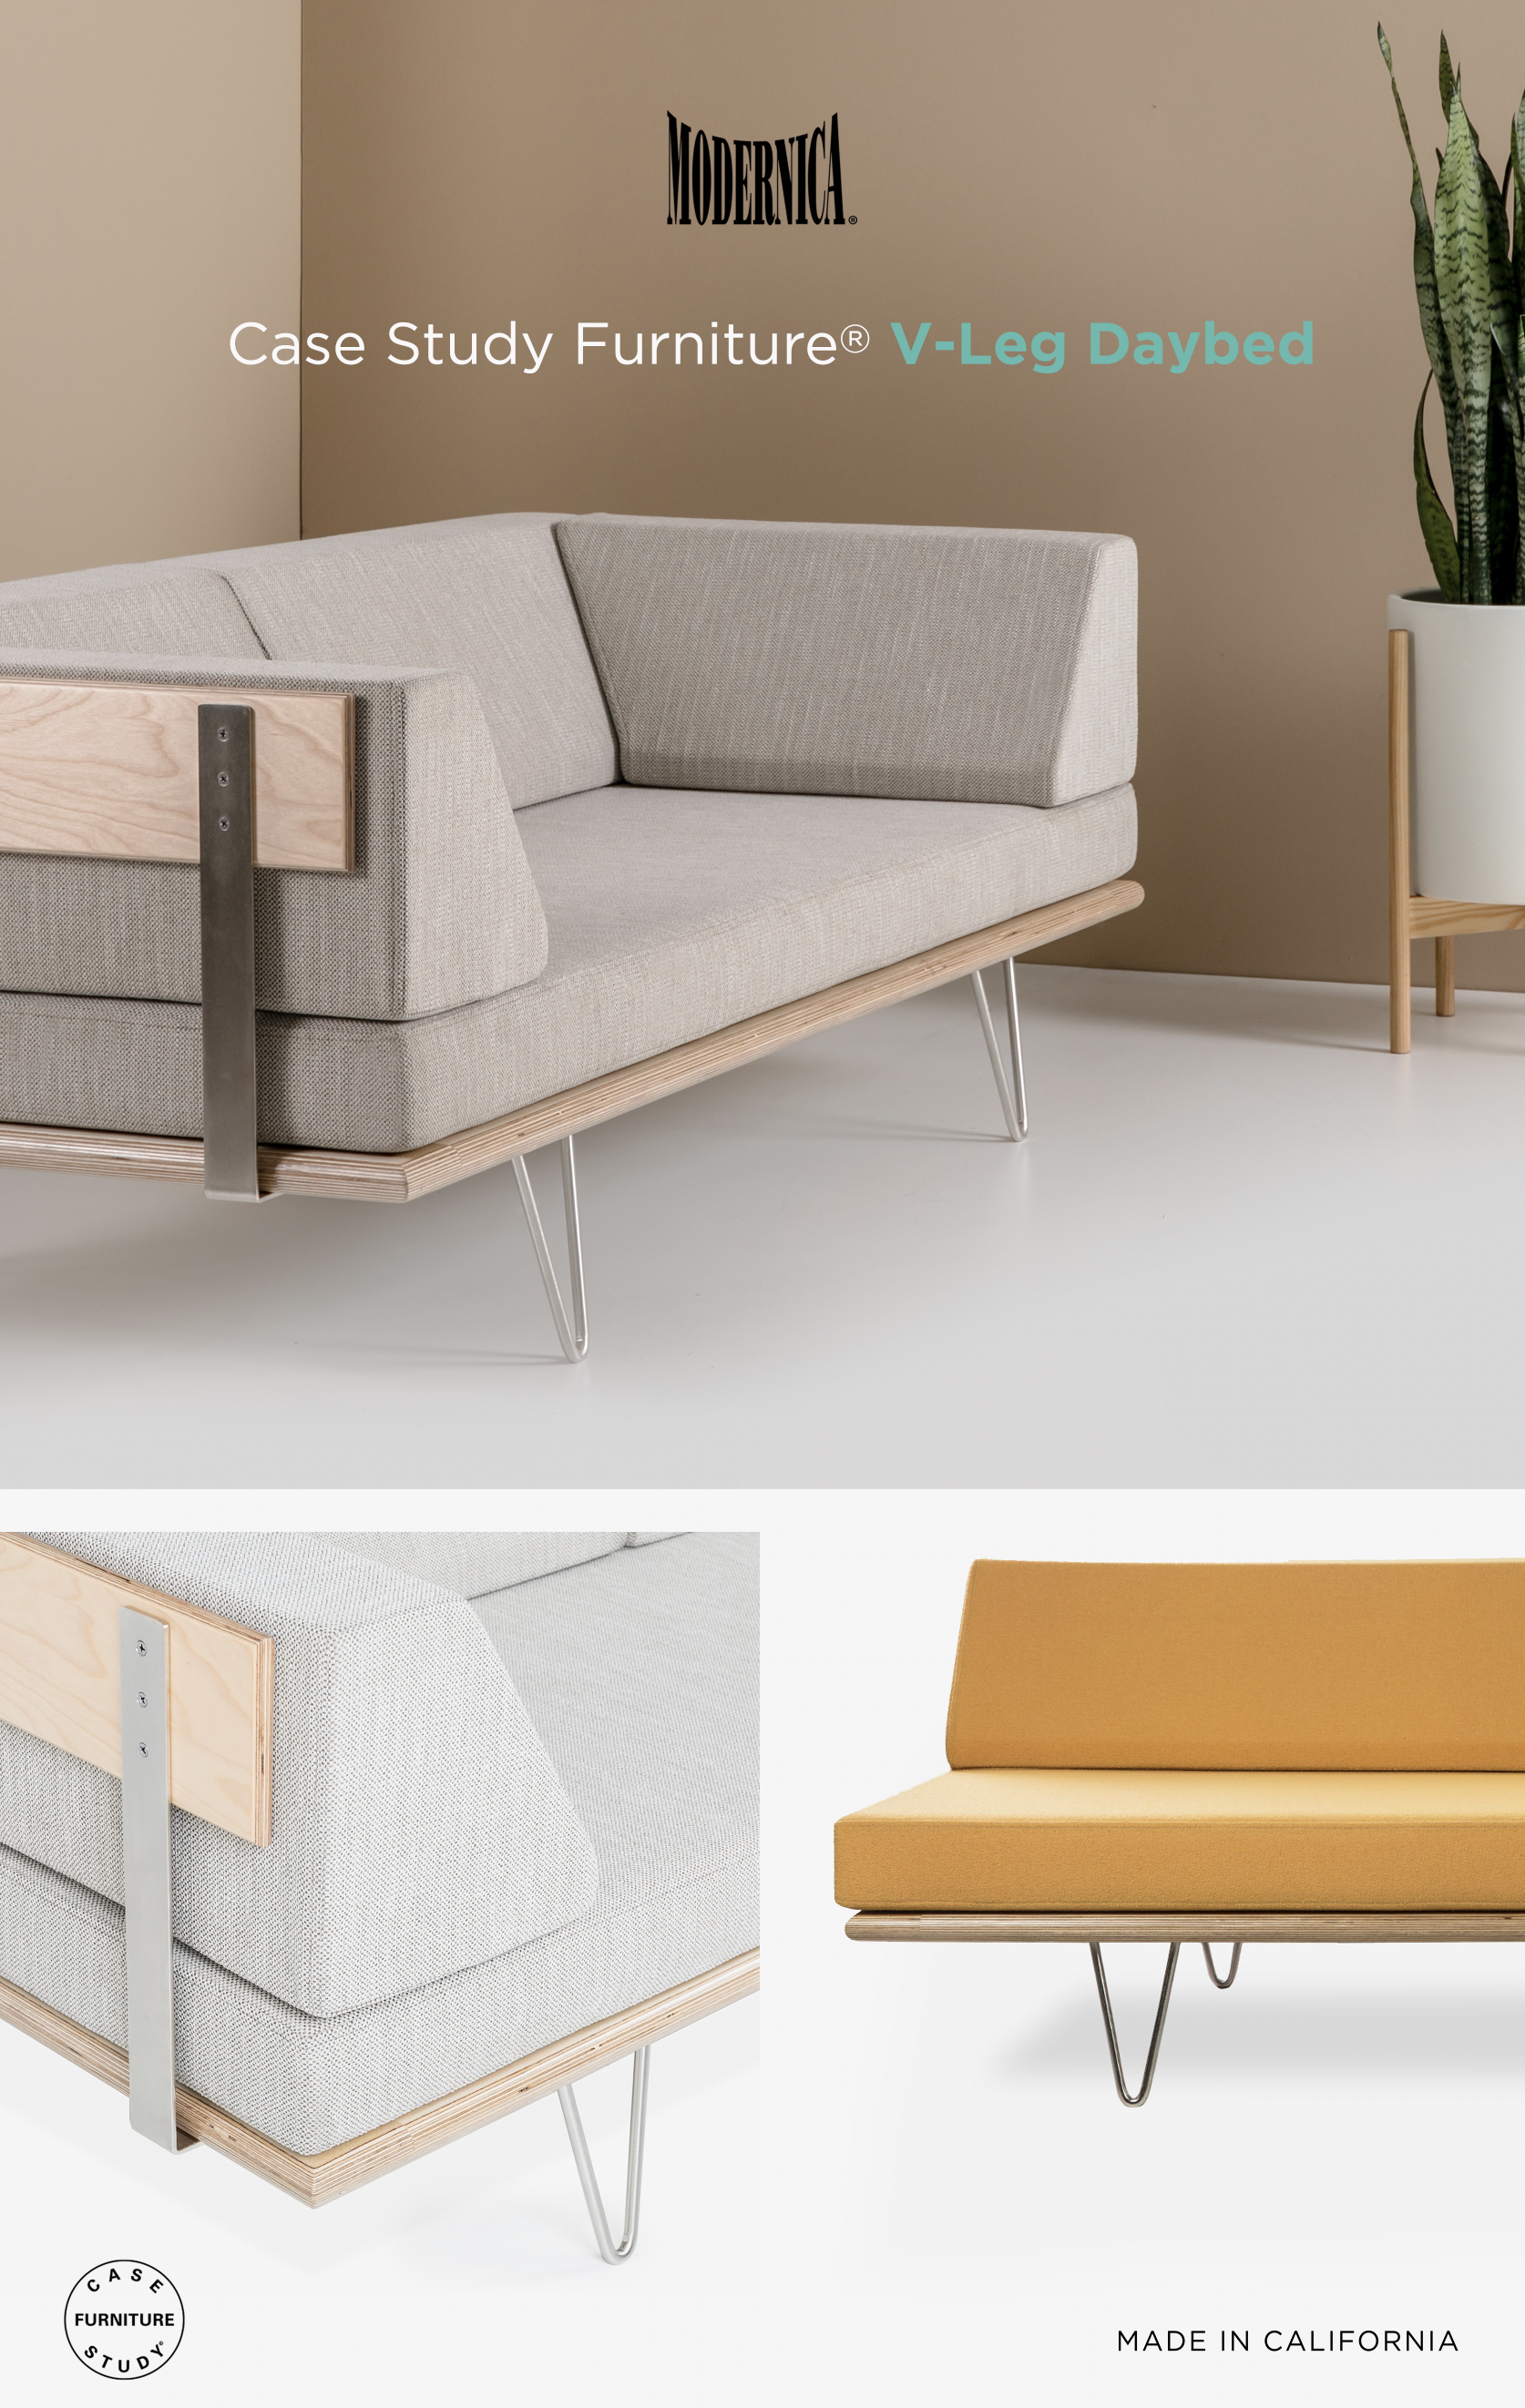 - Case Study Furniture® V-Leg Daybed Couch Case Study Daybed, Case